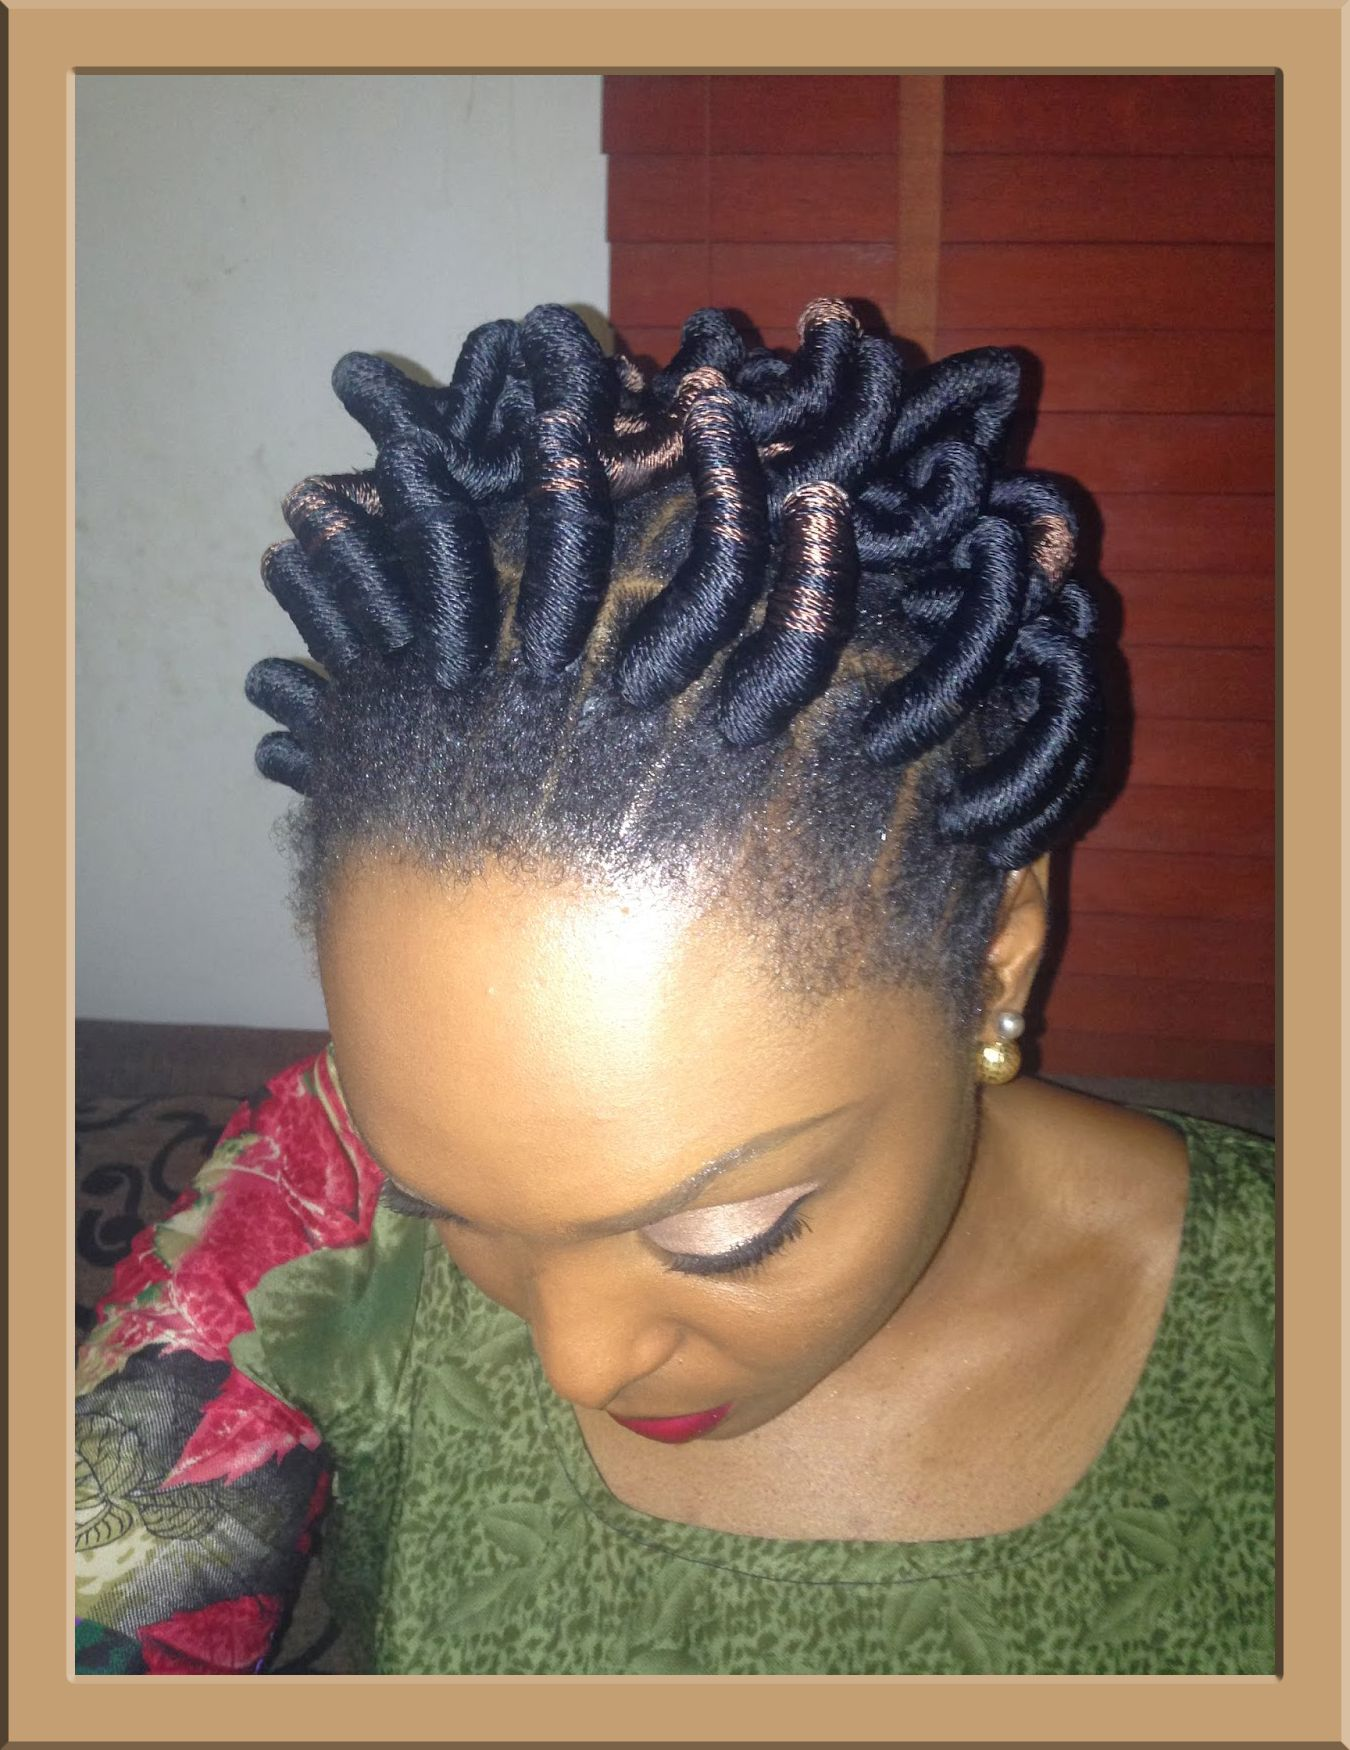 Top 10 YouTube Clips About Hair Styles for 2021